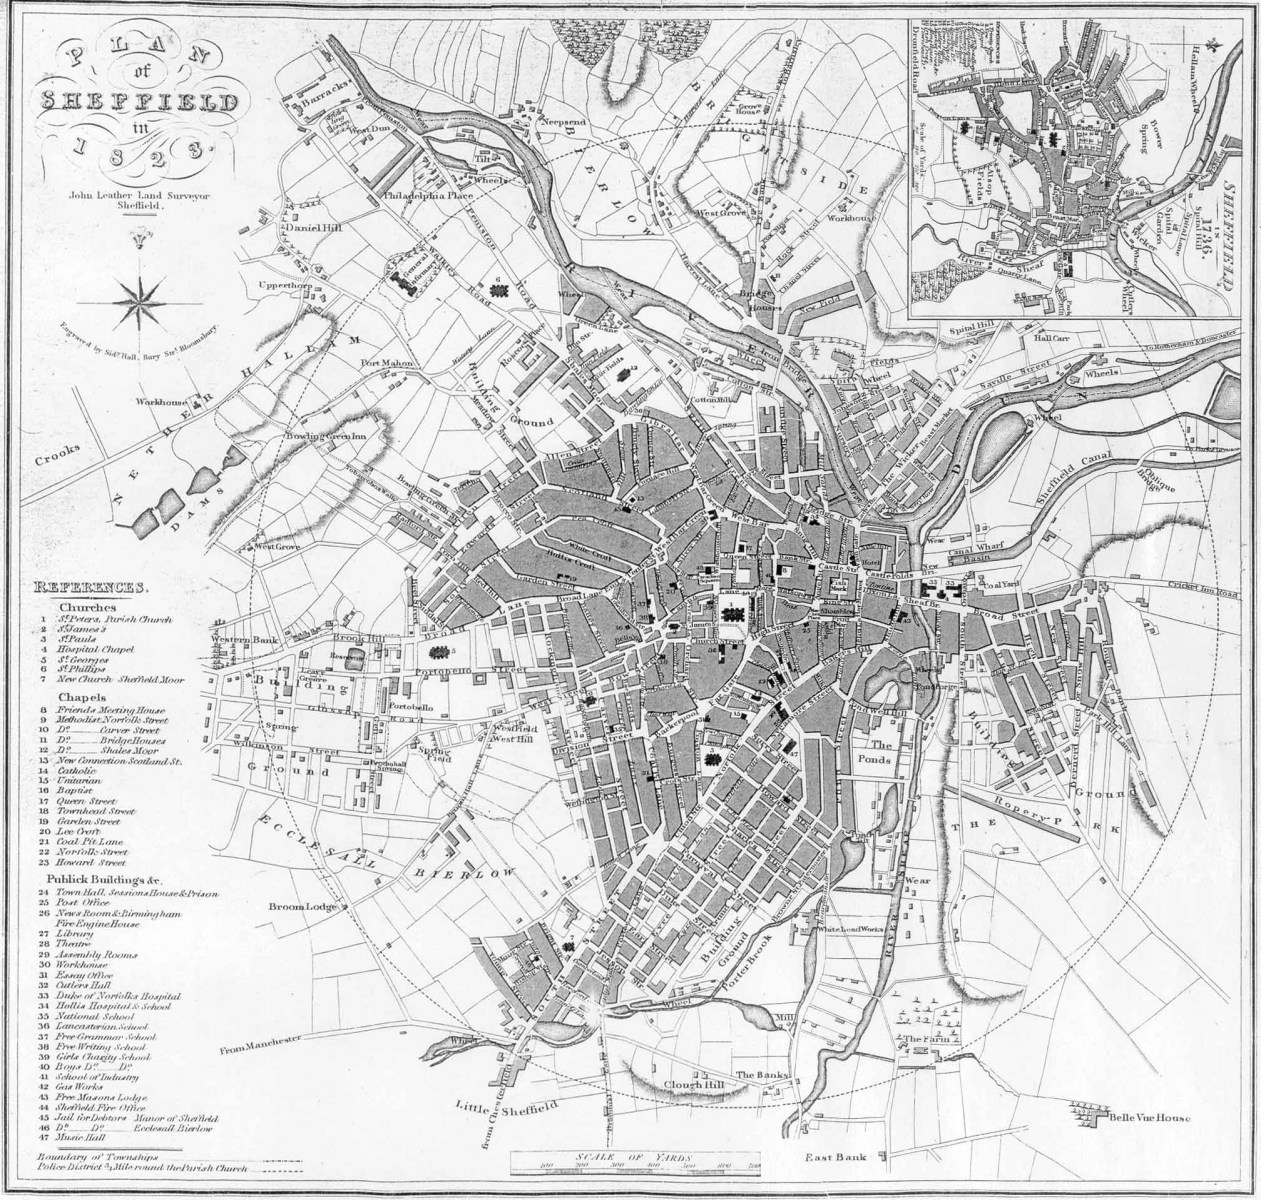 Sheffield_1823_plan.jpg